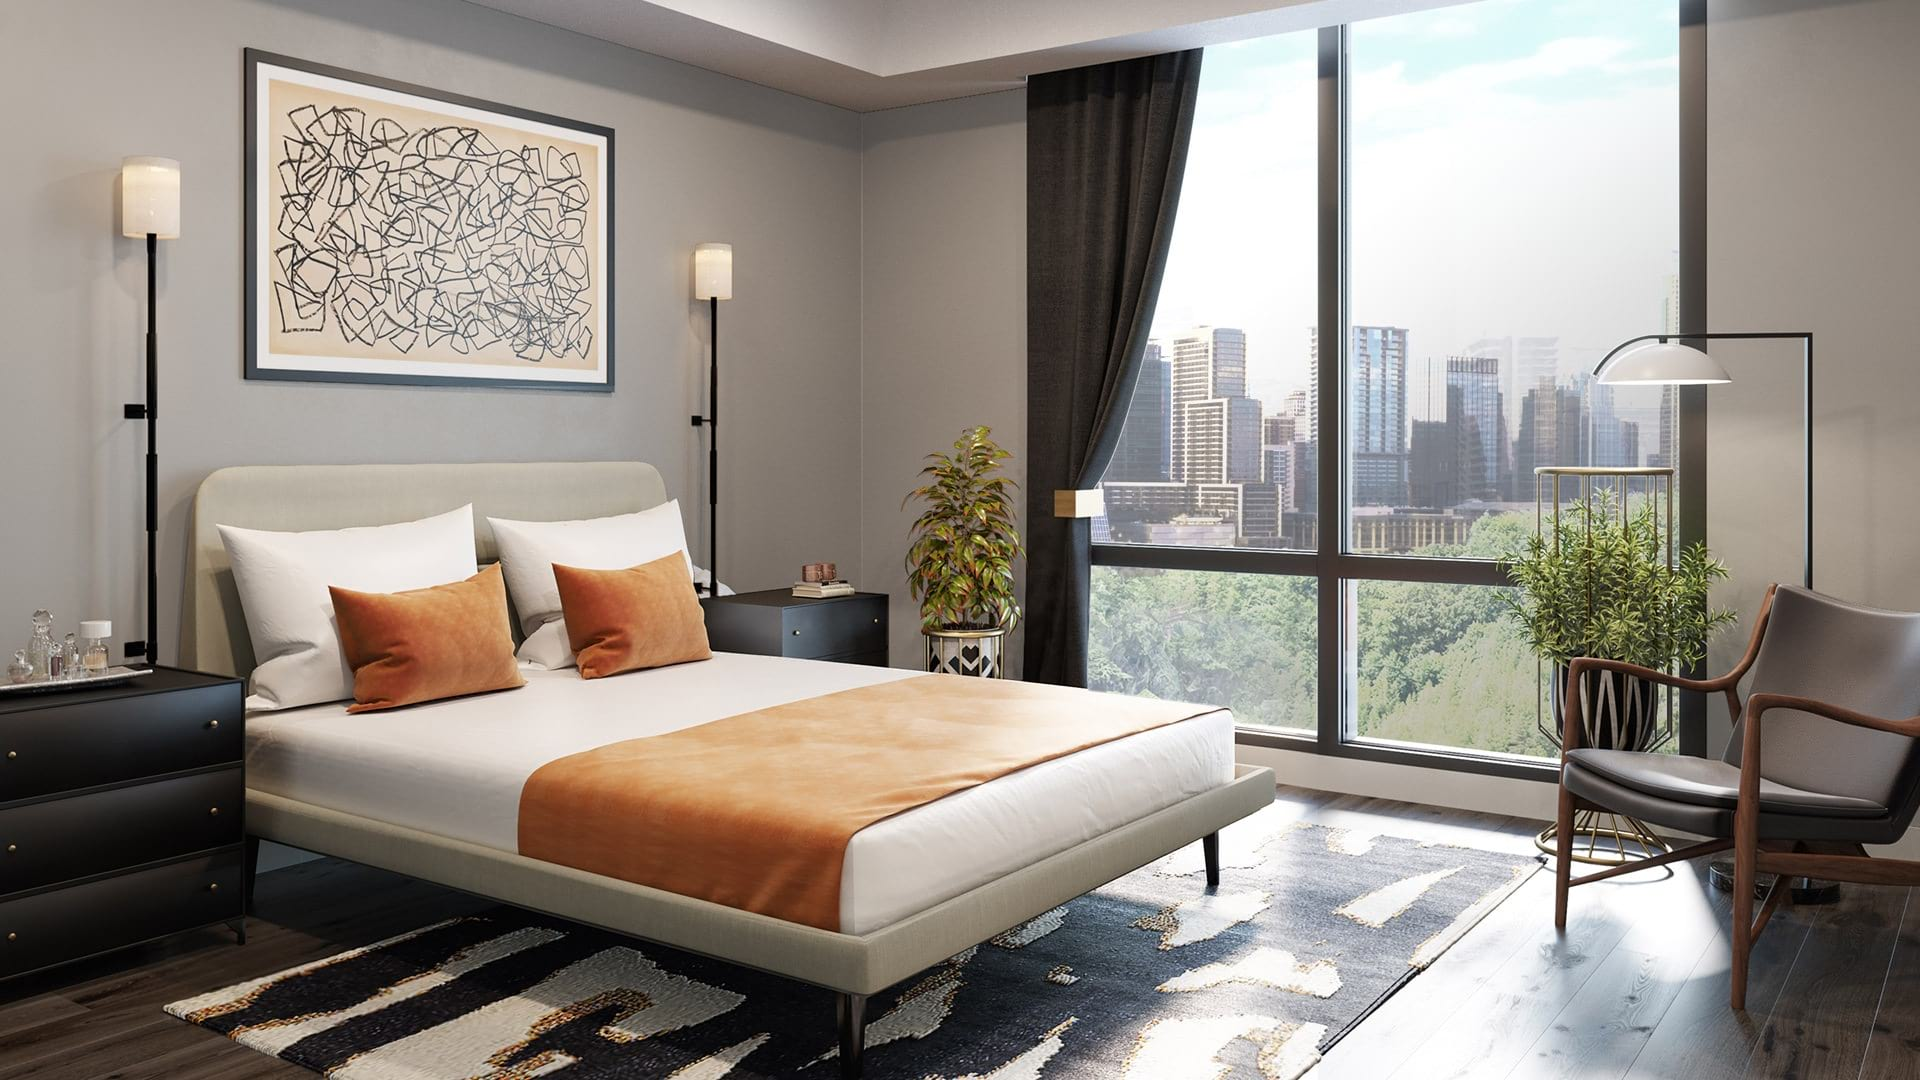 Bedroom with a view of Austin's Skyline